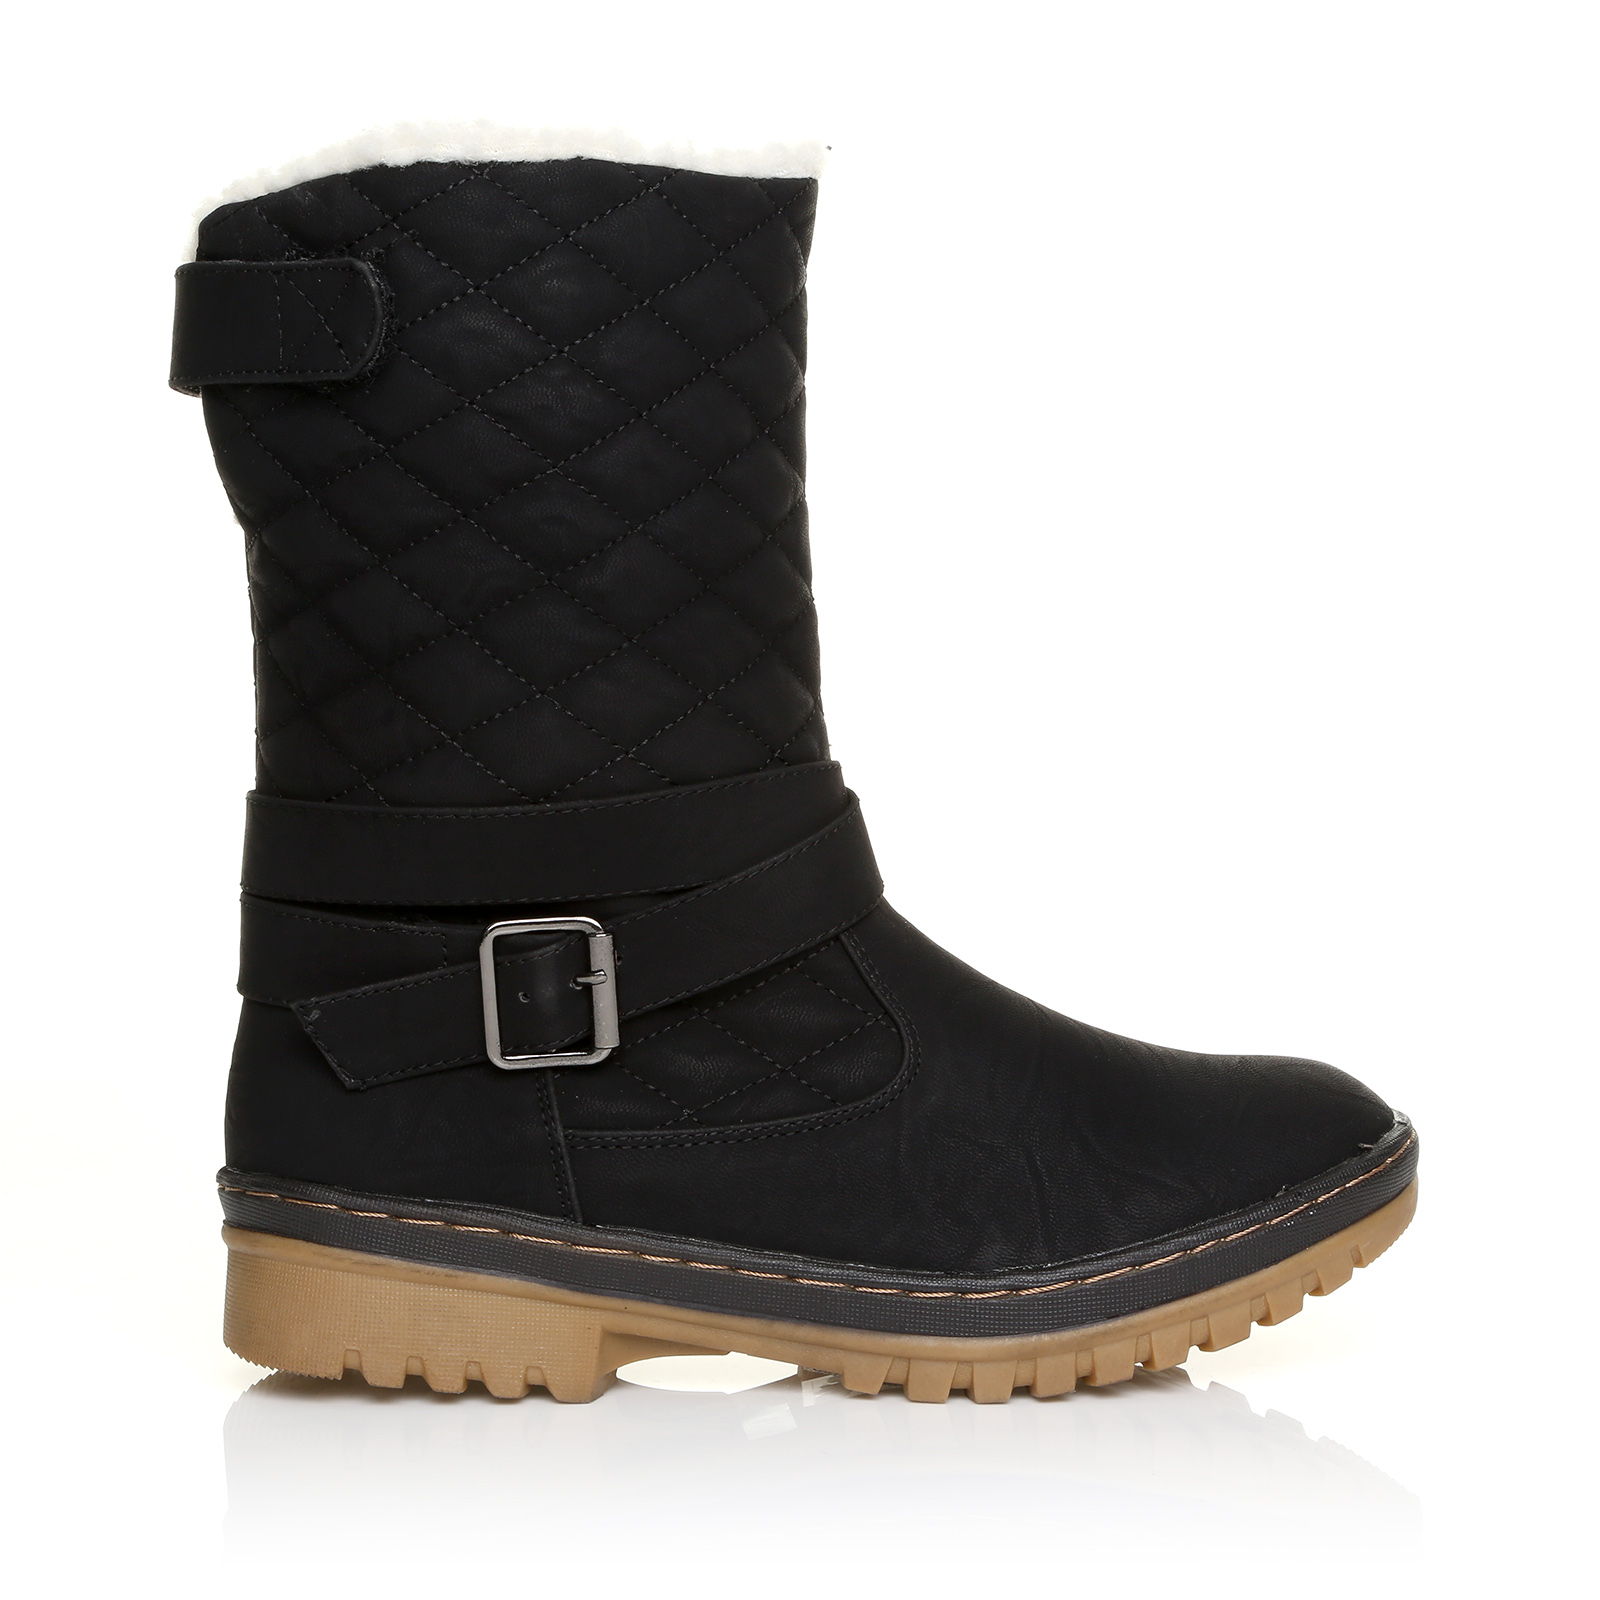 Ladies Rubber Snow Boots | Homewood Mountain Ski Resort